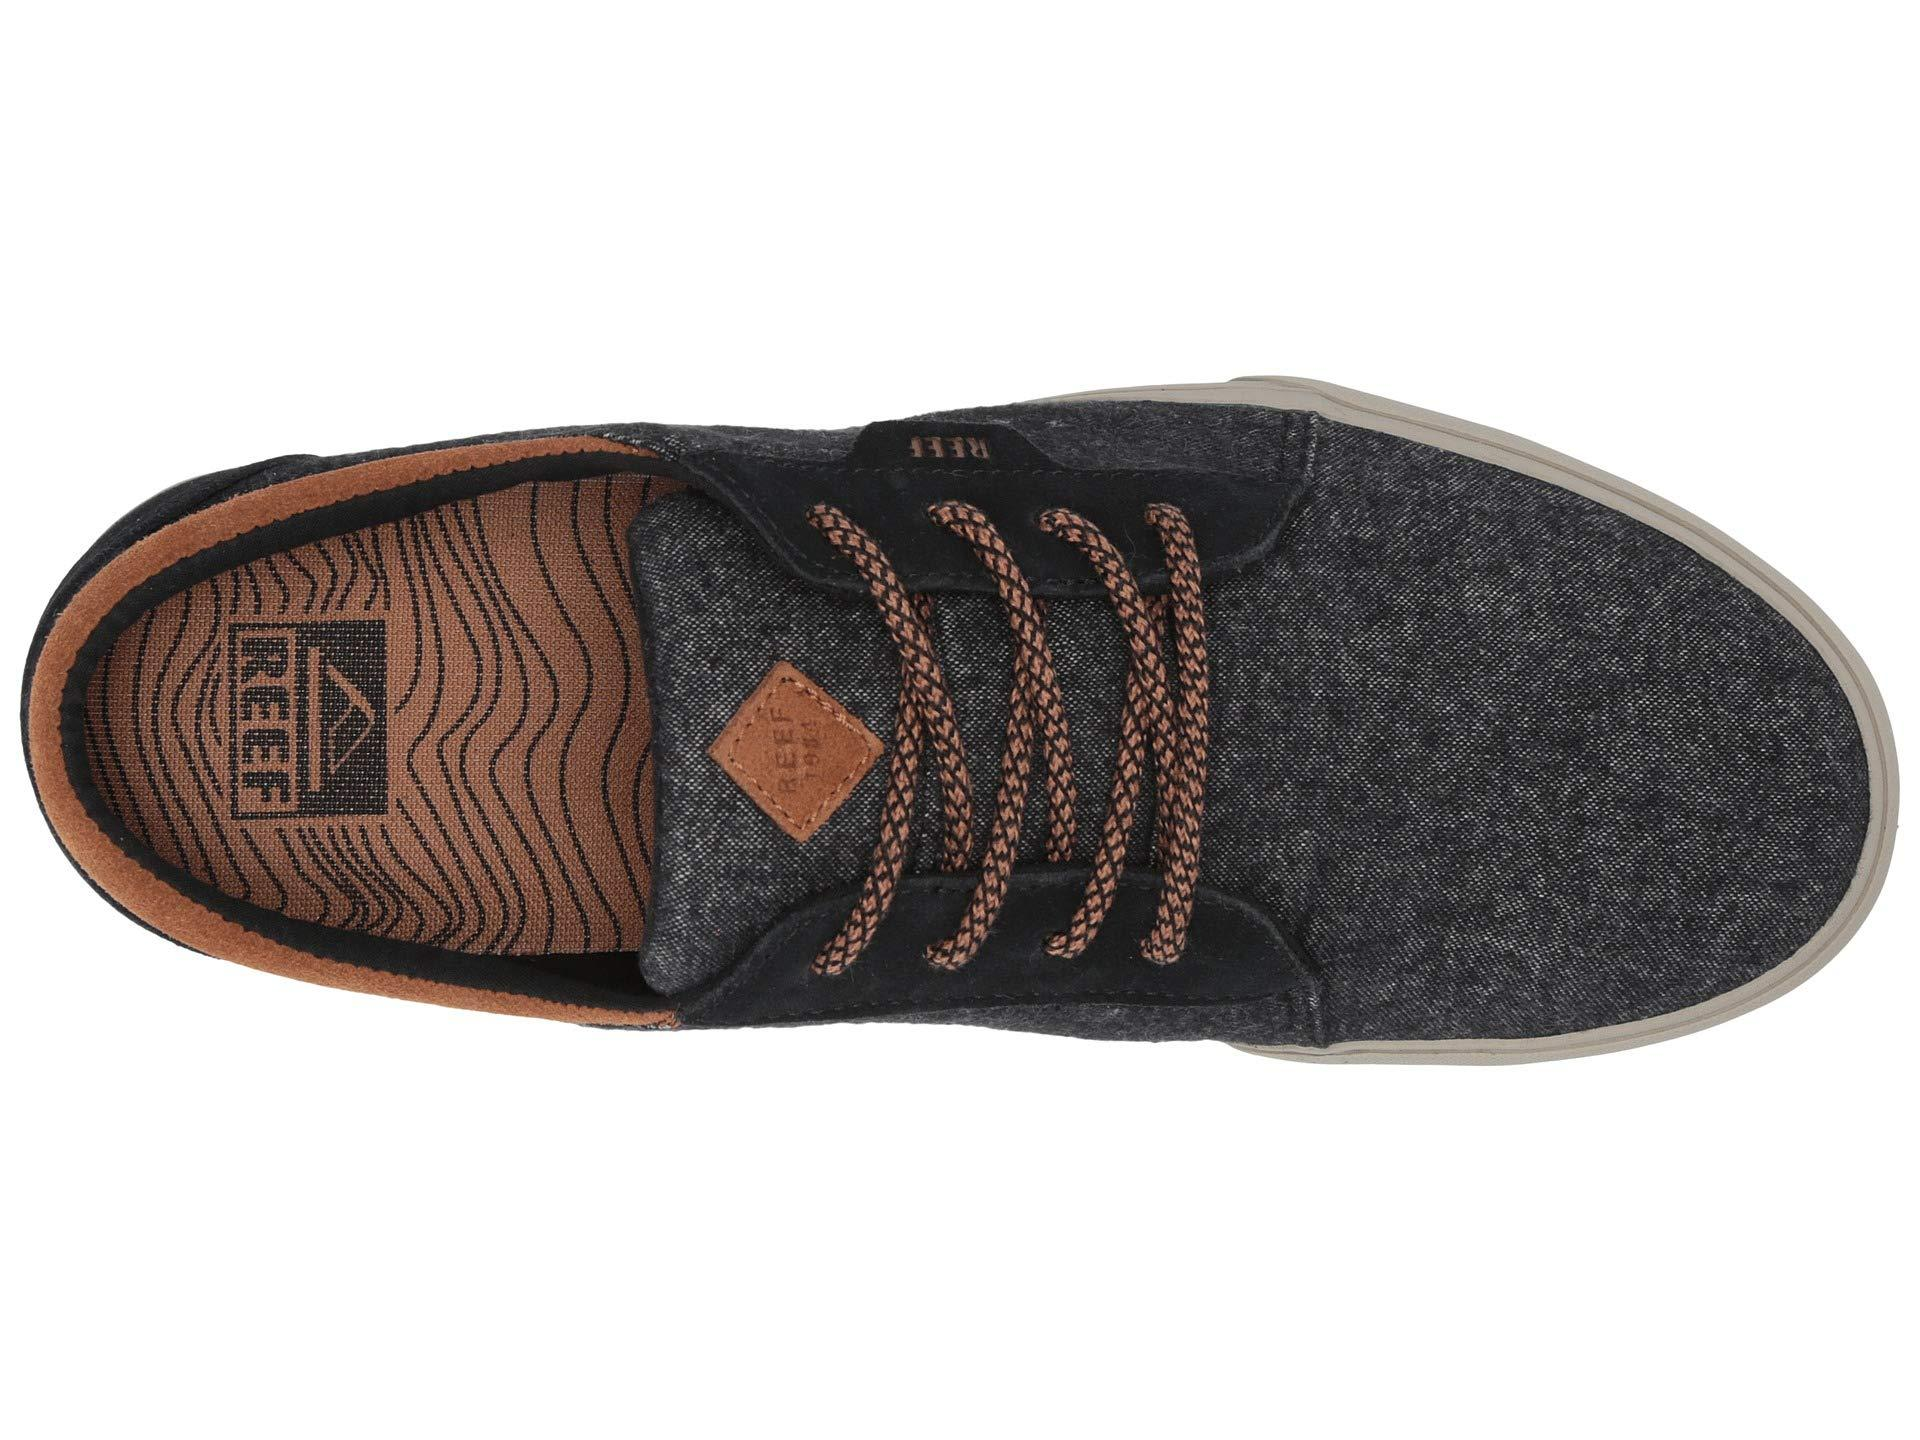 91ca37b9164a5 Reef - Ridge Tx (black tobacco) Men s Lace Up Casual Shoes for Men. View  fullscreen